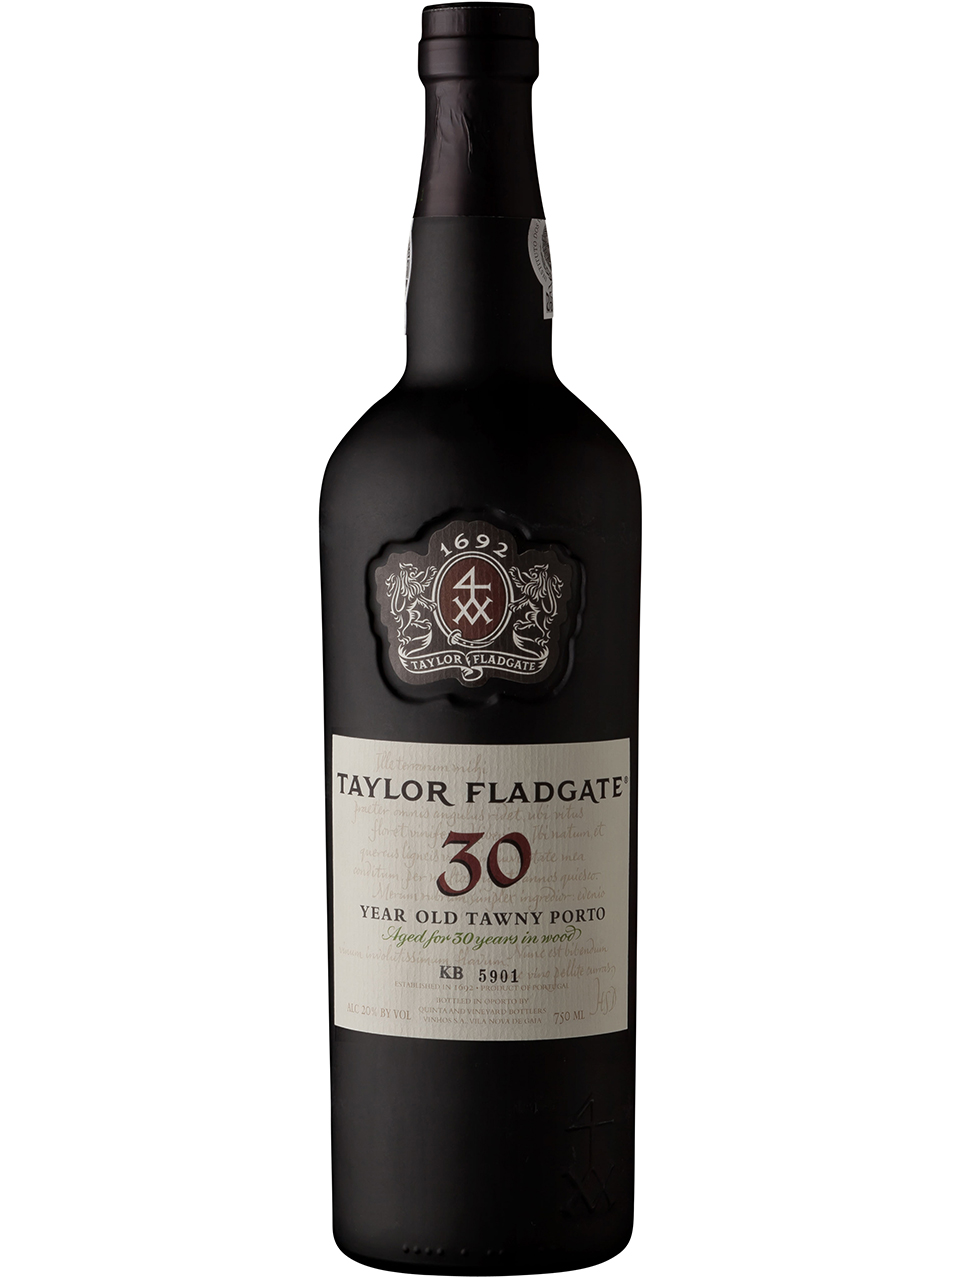 Taylor Fladgate 30 Year Old Tawny Port